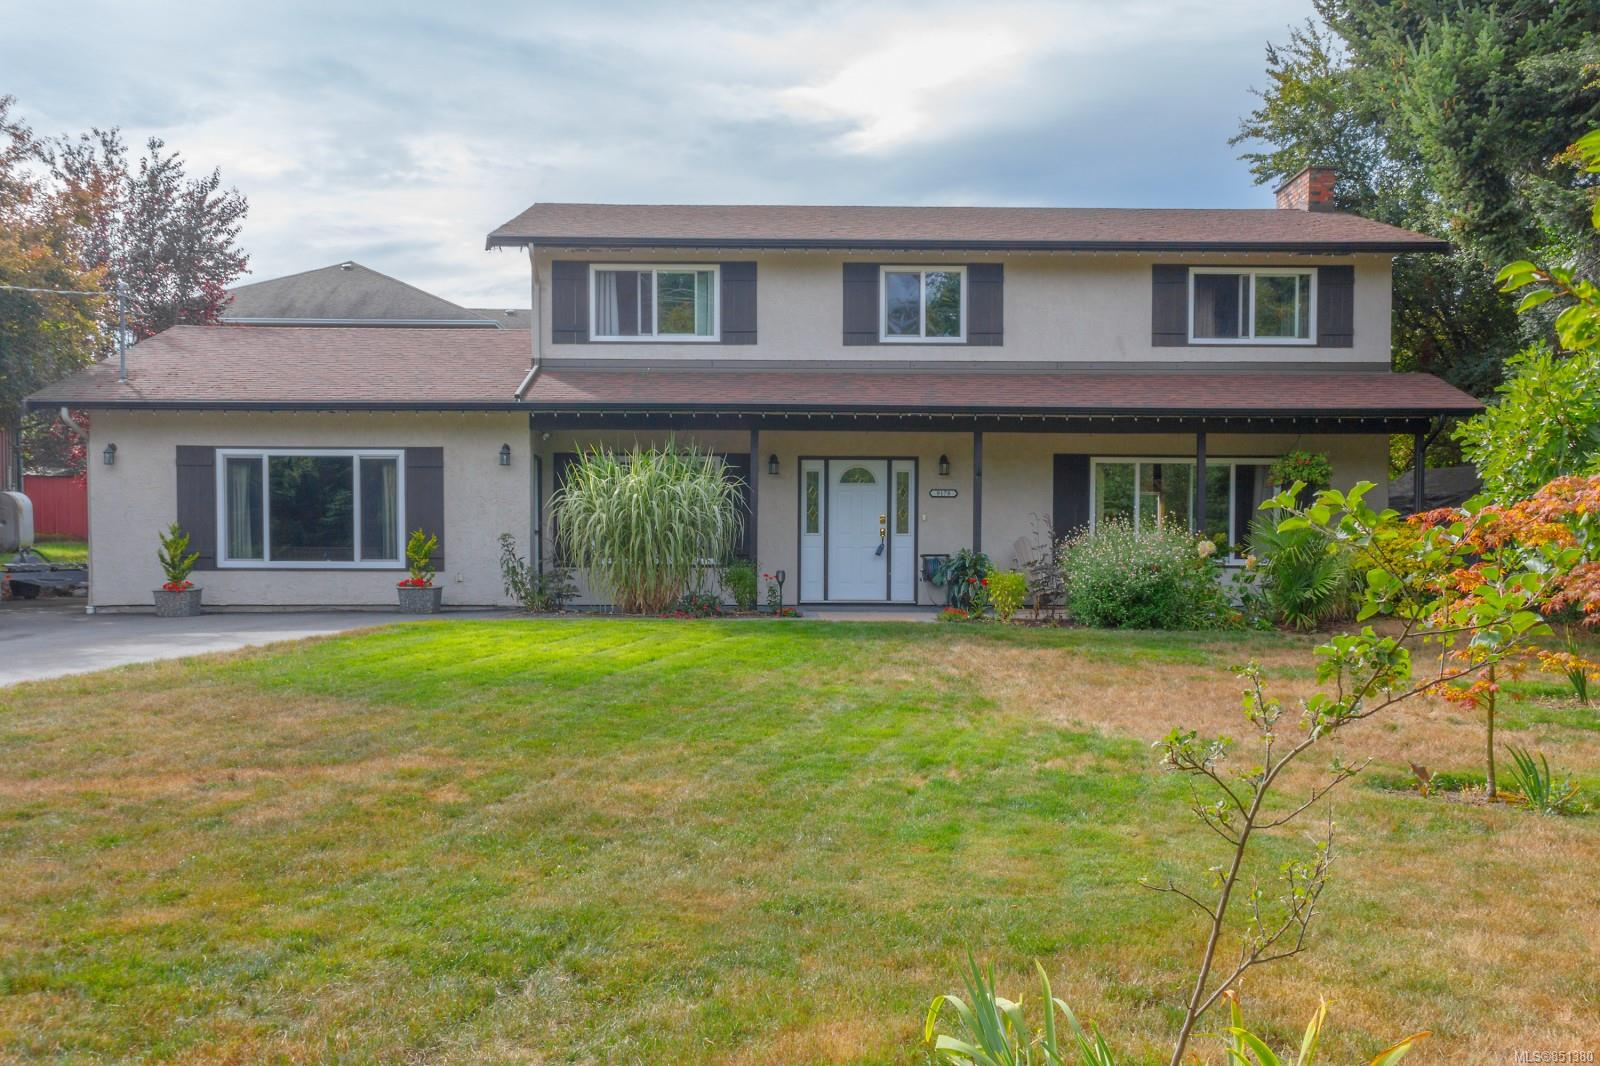 Nicely maintained 4 bedroom home nestled on a quiet cul-de-sac